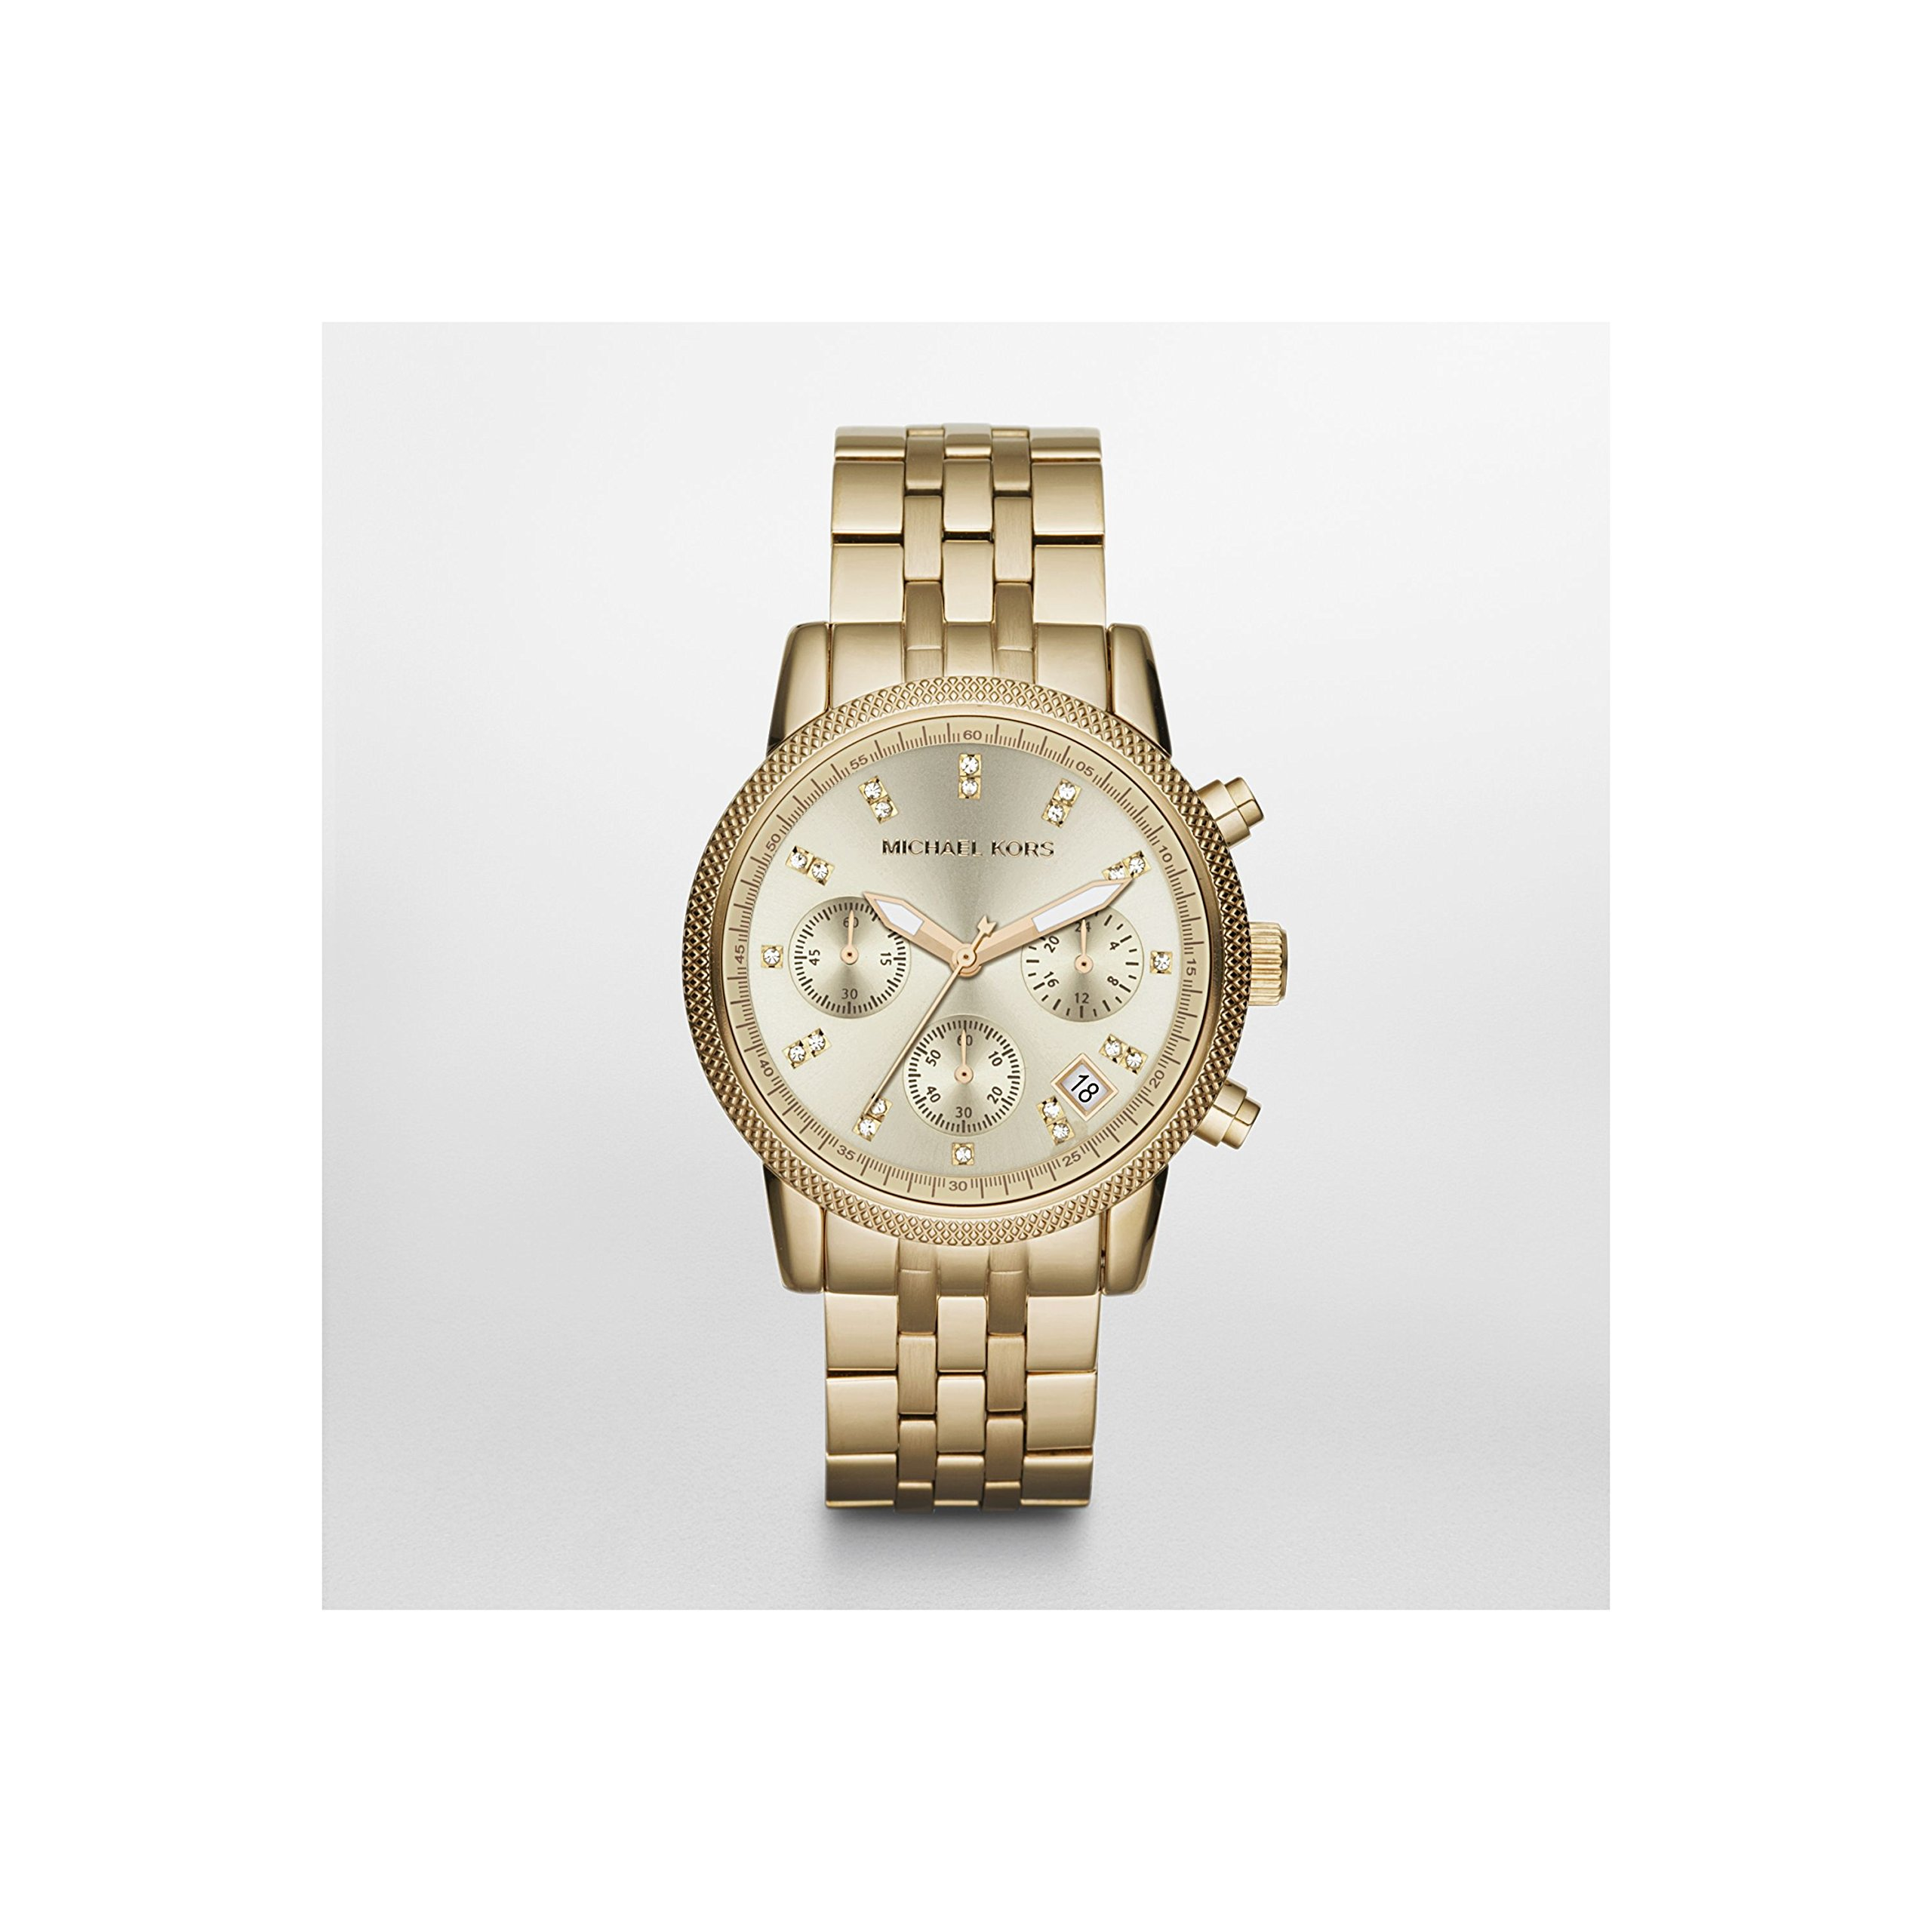 Michael Kors Women's MK5676 Ritz Gold-Tone Stainless Steel Chronograph Watch by Michael Kors